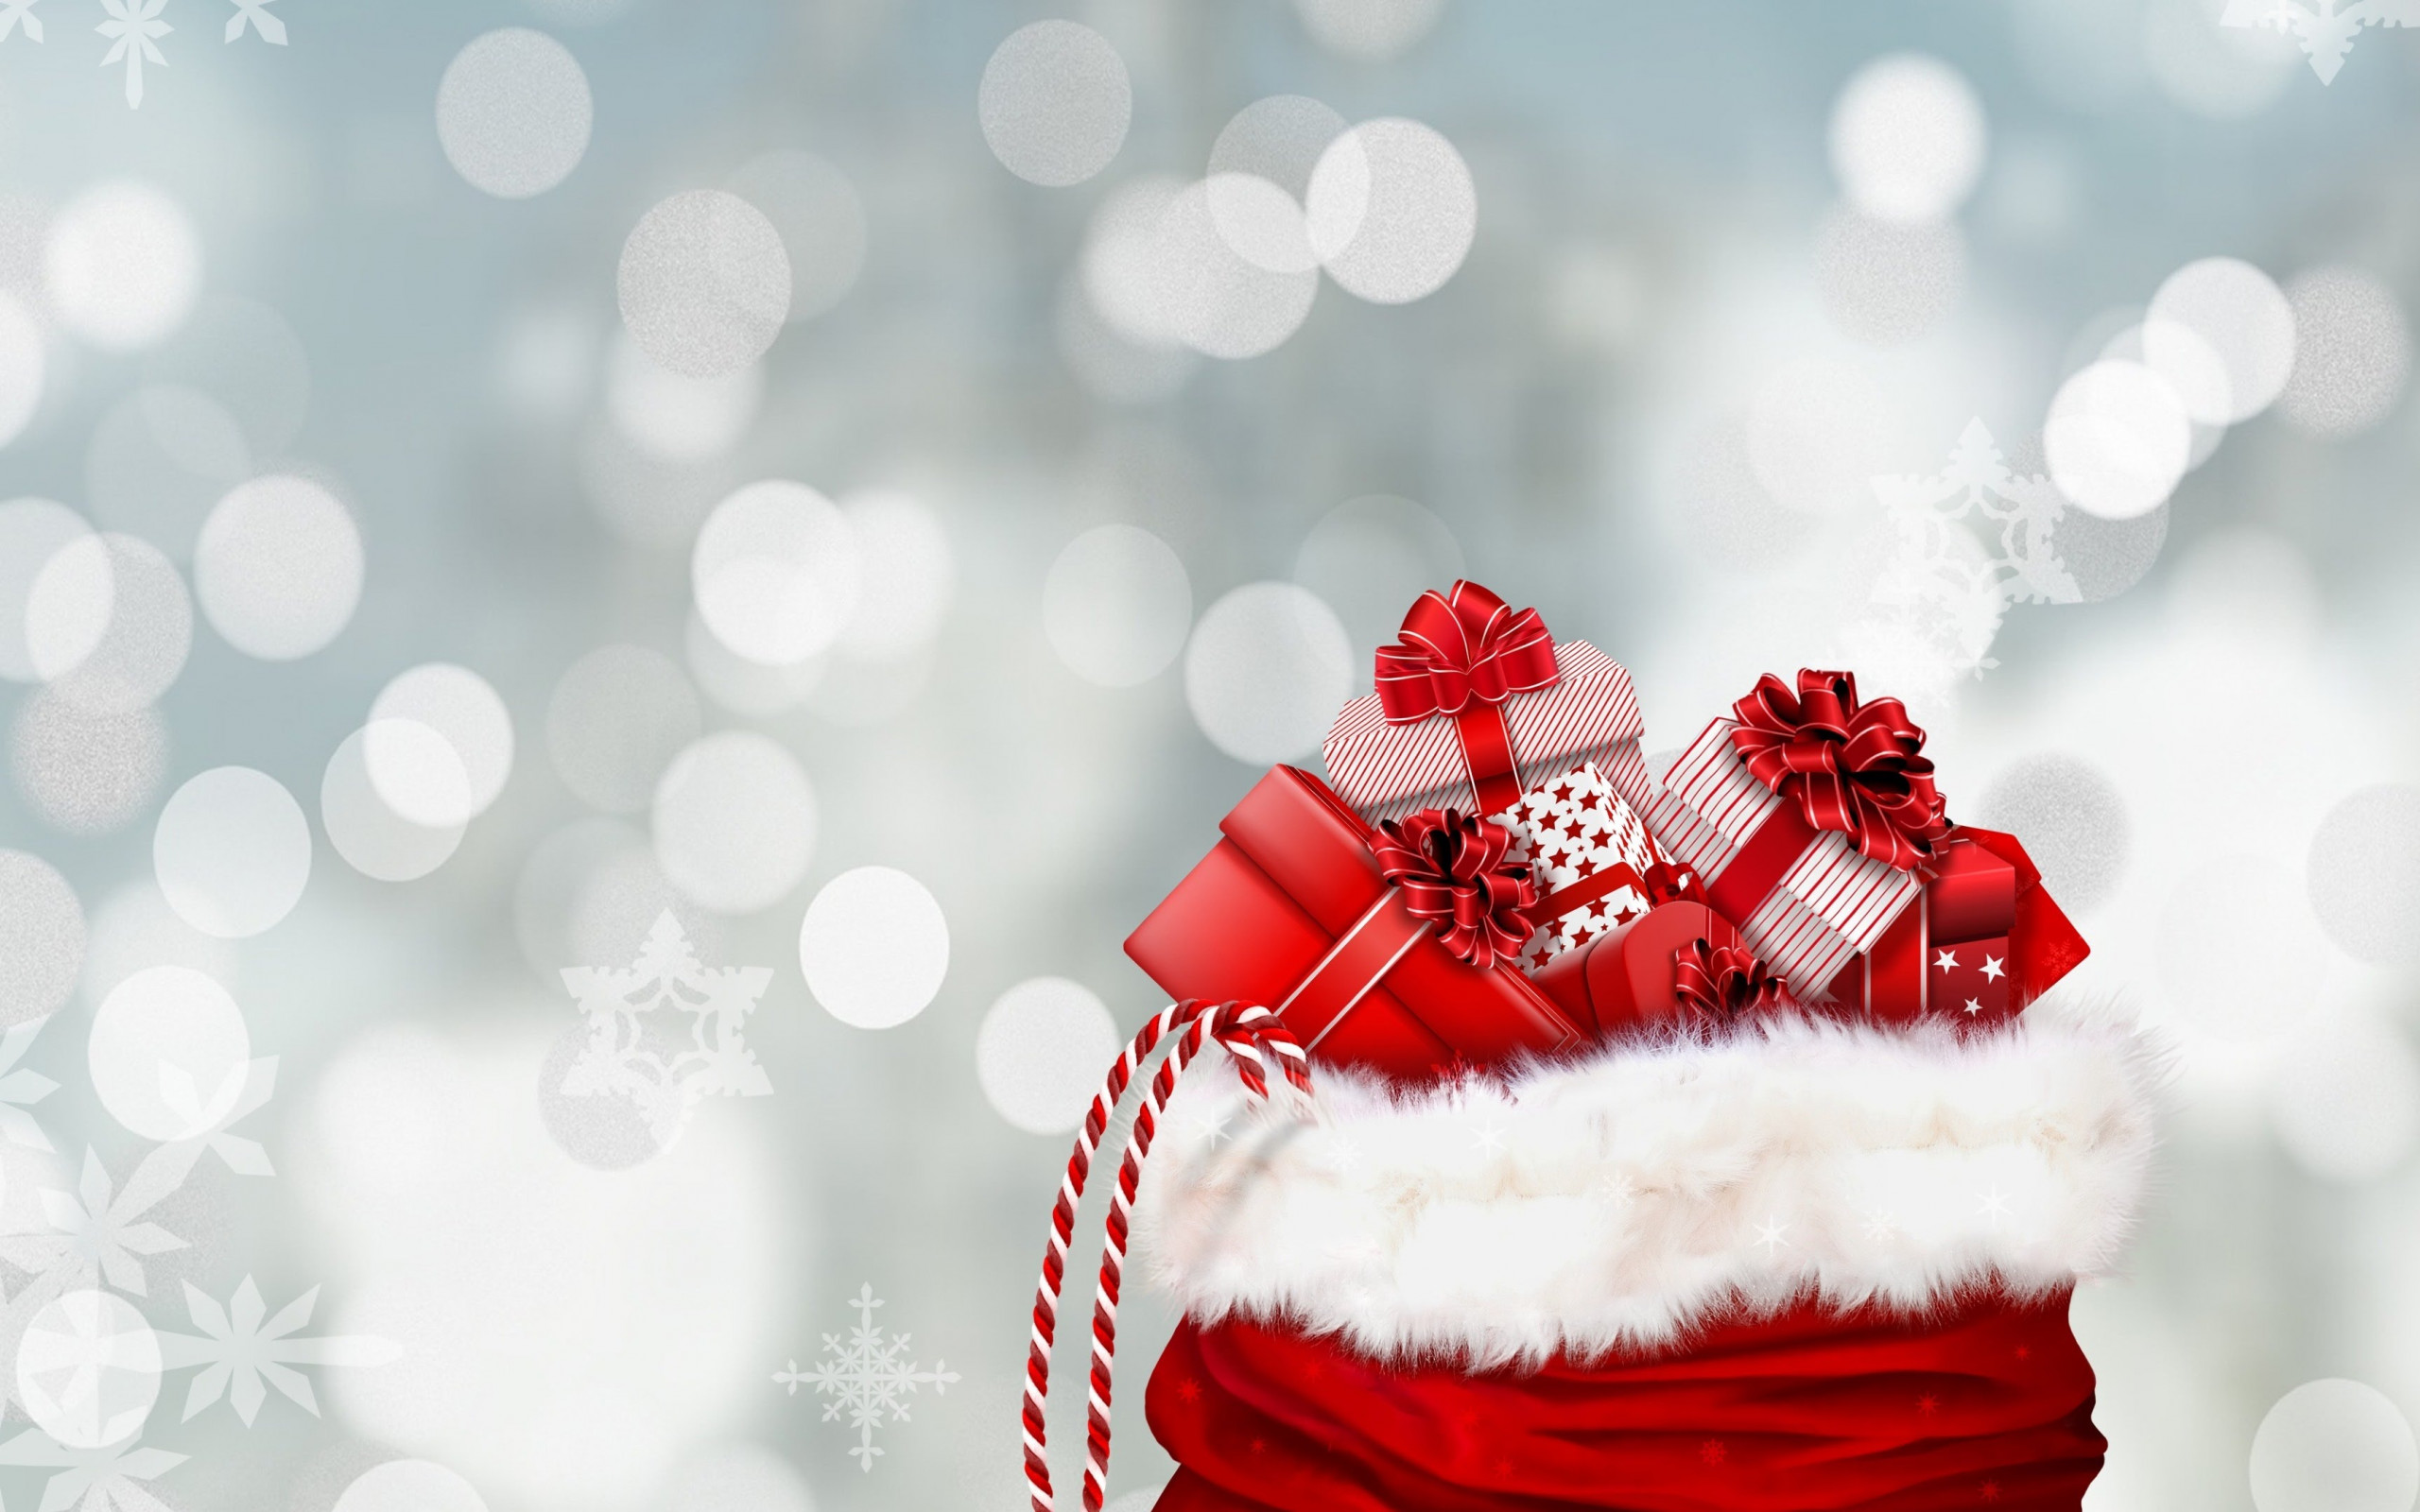 Bag with Christmas gifts wallpaper 2560x1600